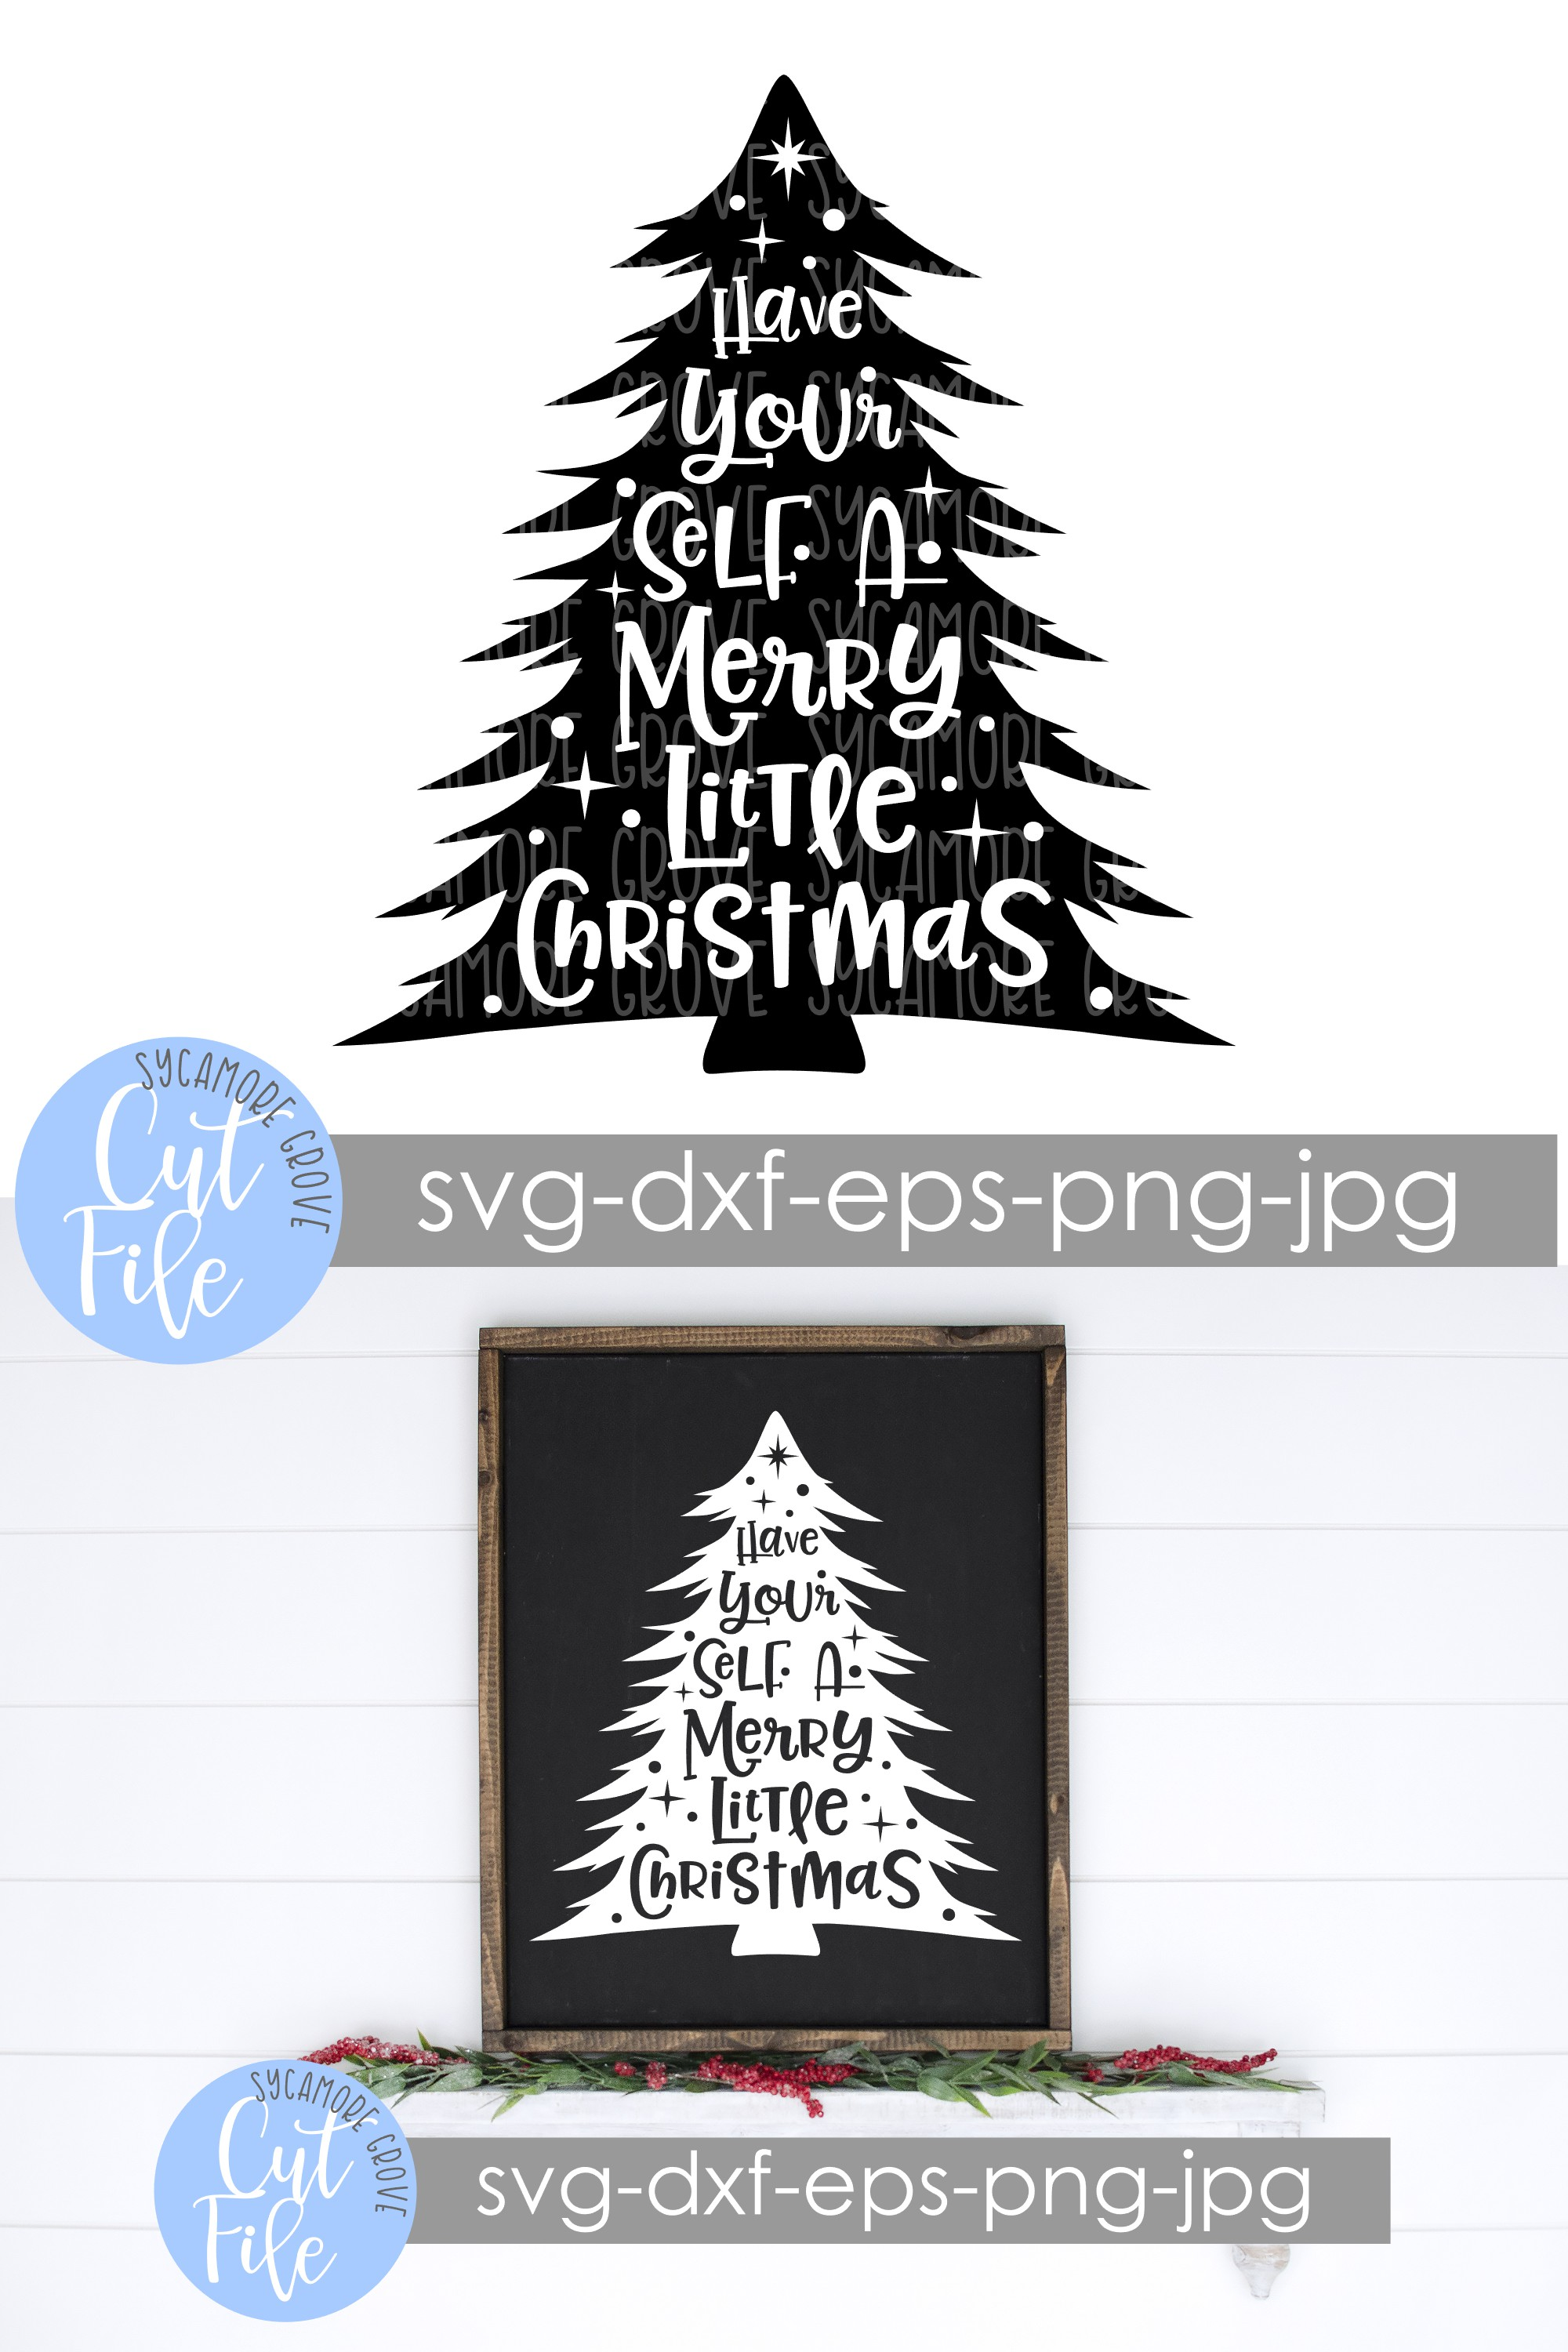 Have Yourself A Merry Little Christmas SVG example image 6